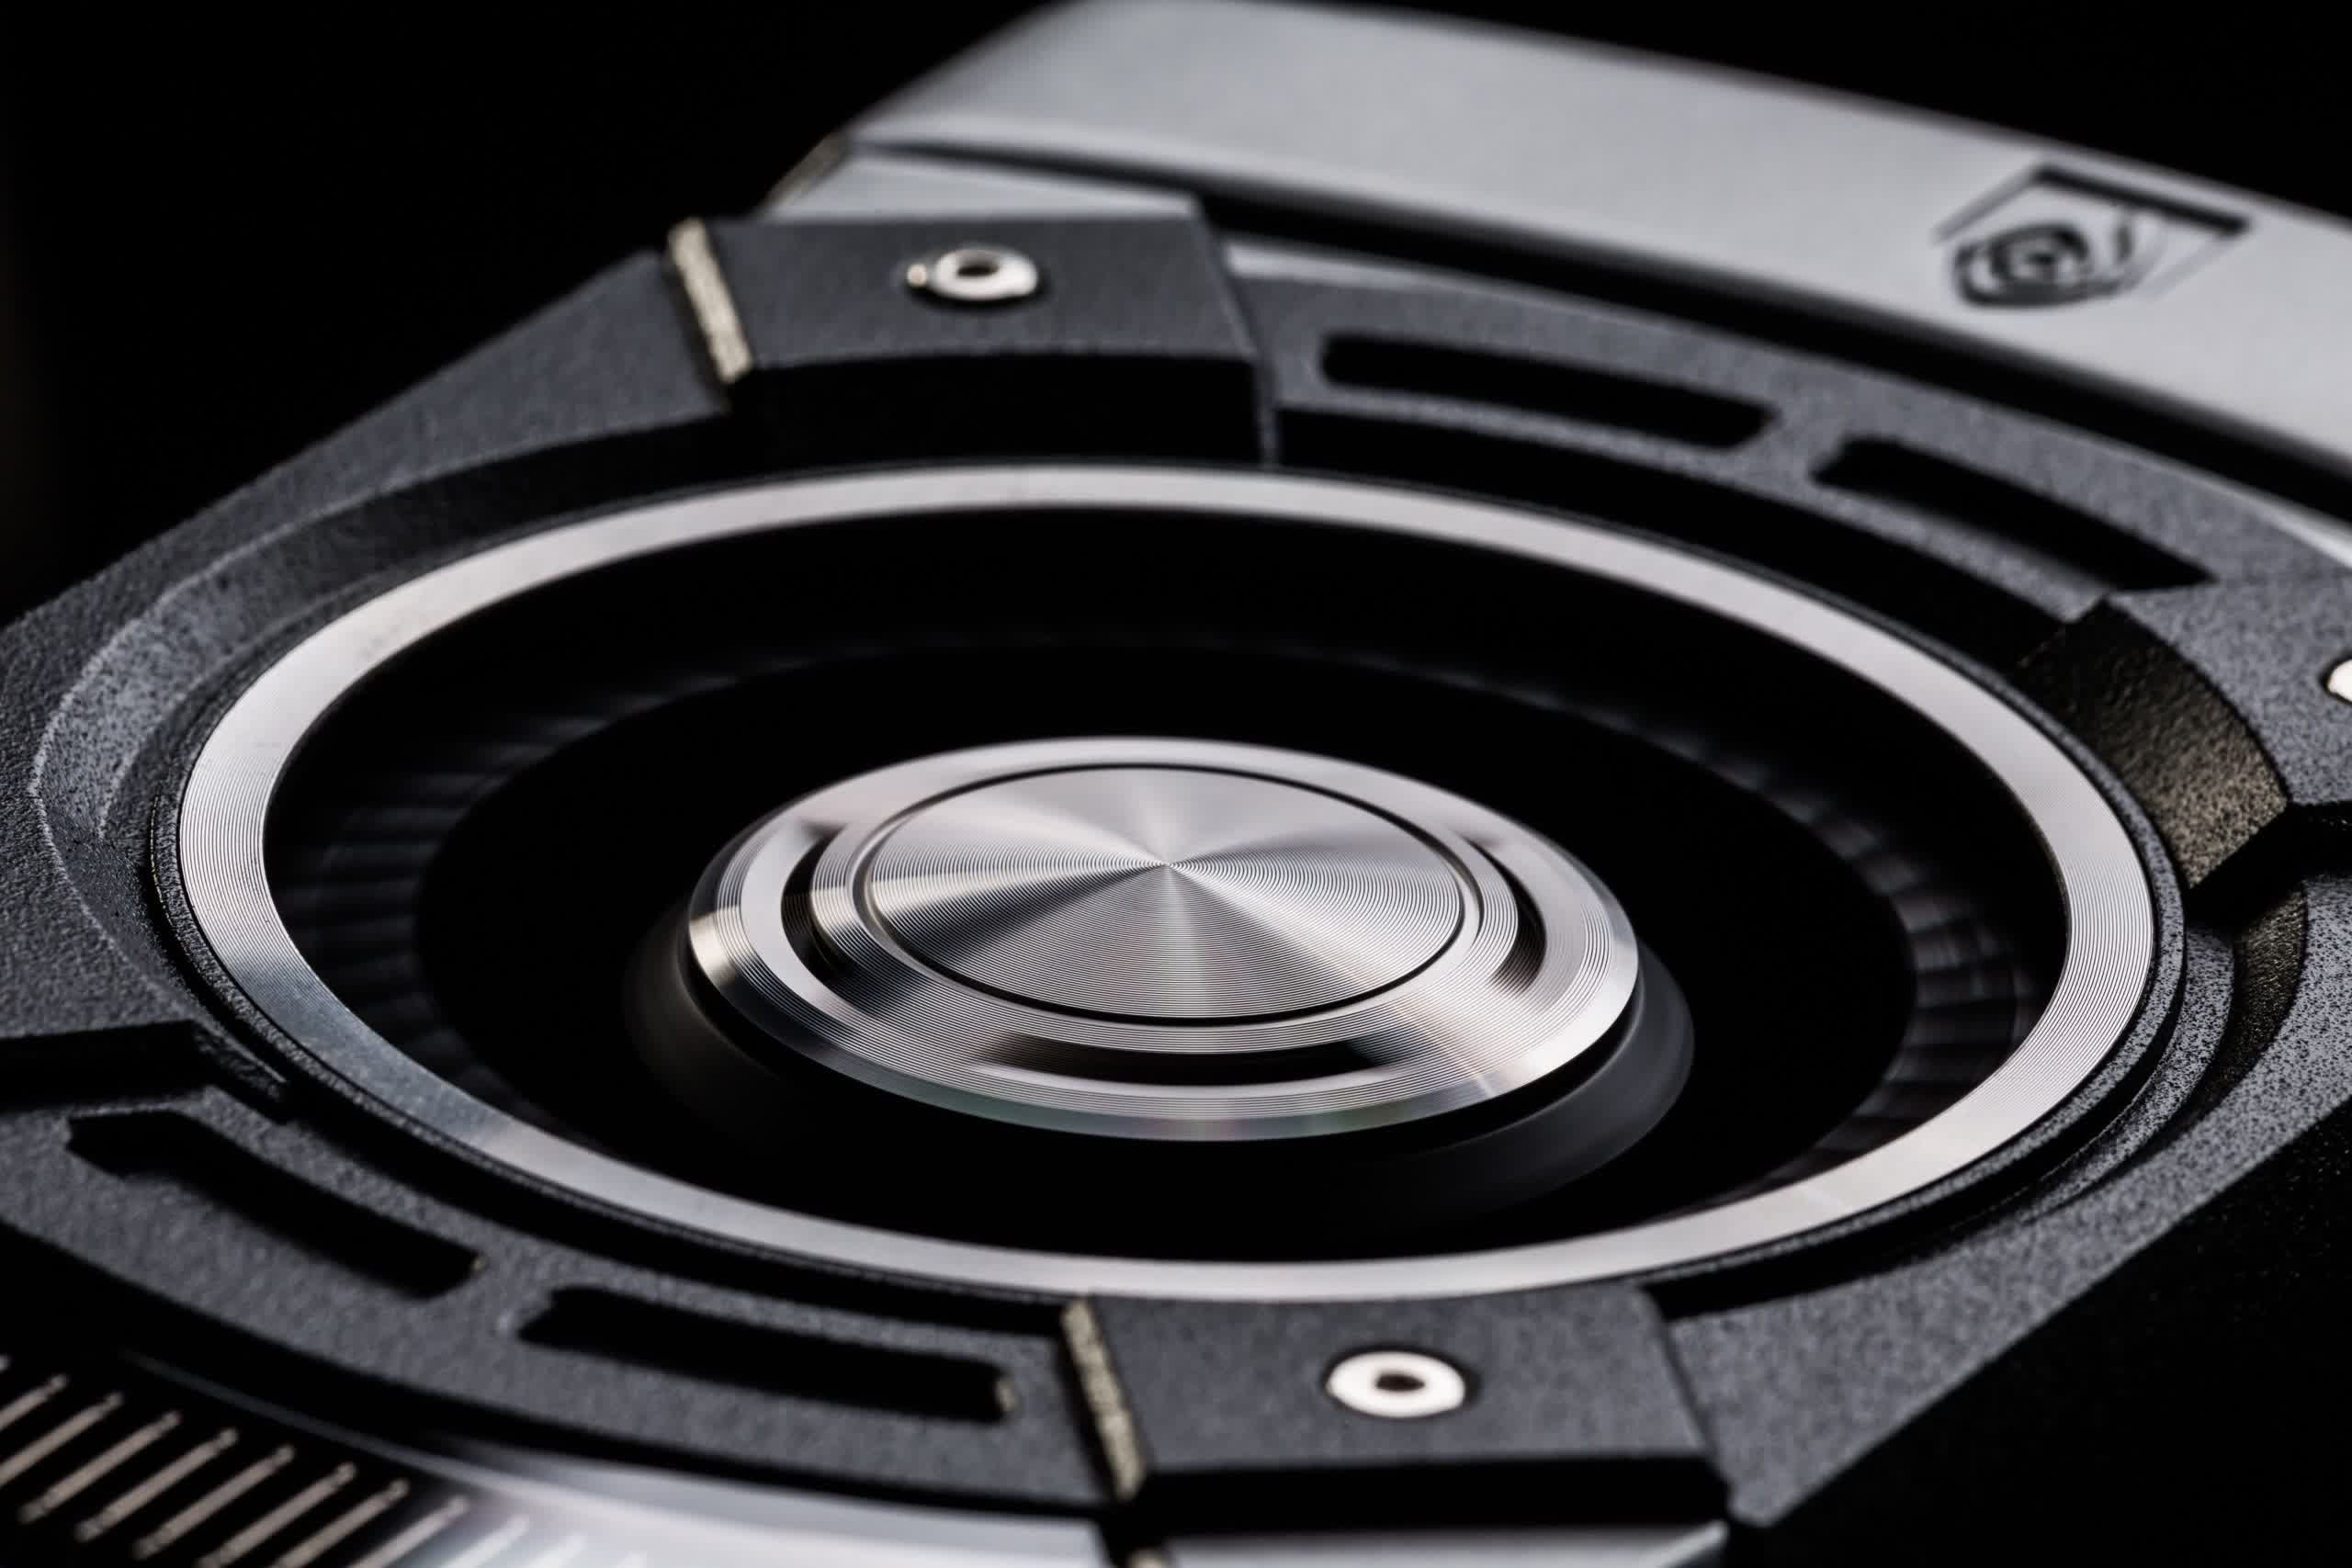 Nvidia officially ends driver support for Kepler GPUs, Windows 7 & 8